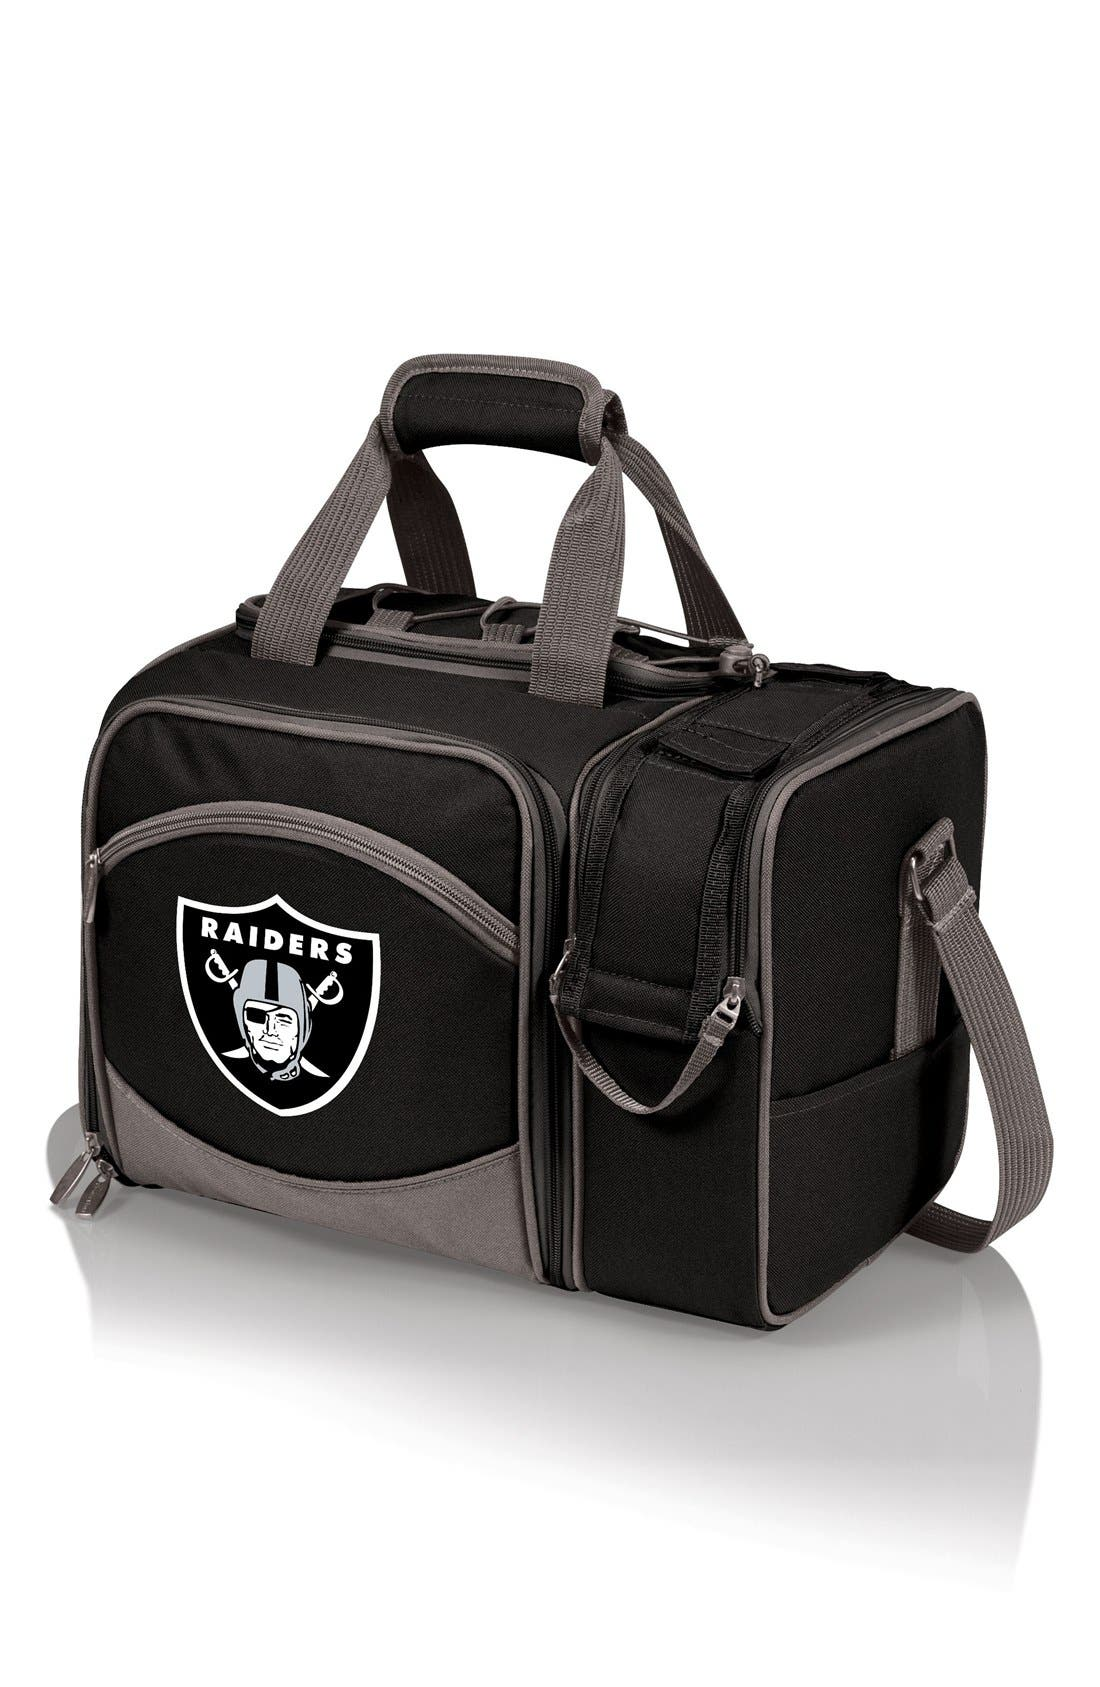 'Pranzo' NFL Insulated Lunch Box,                             Main thumbnail 1, color,                             017